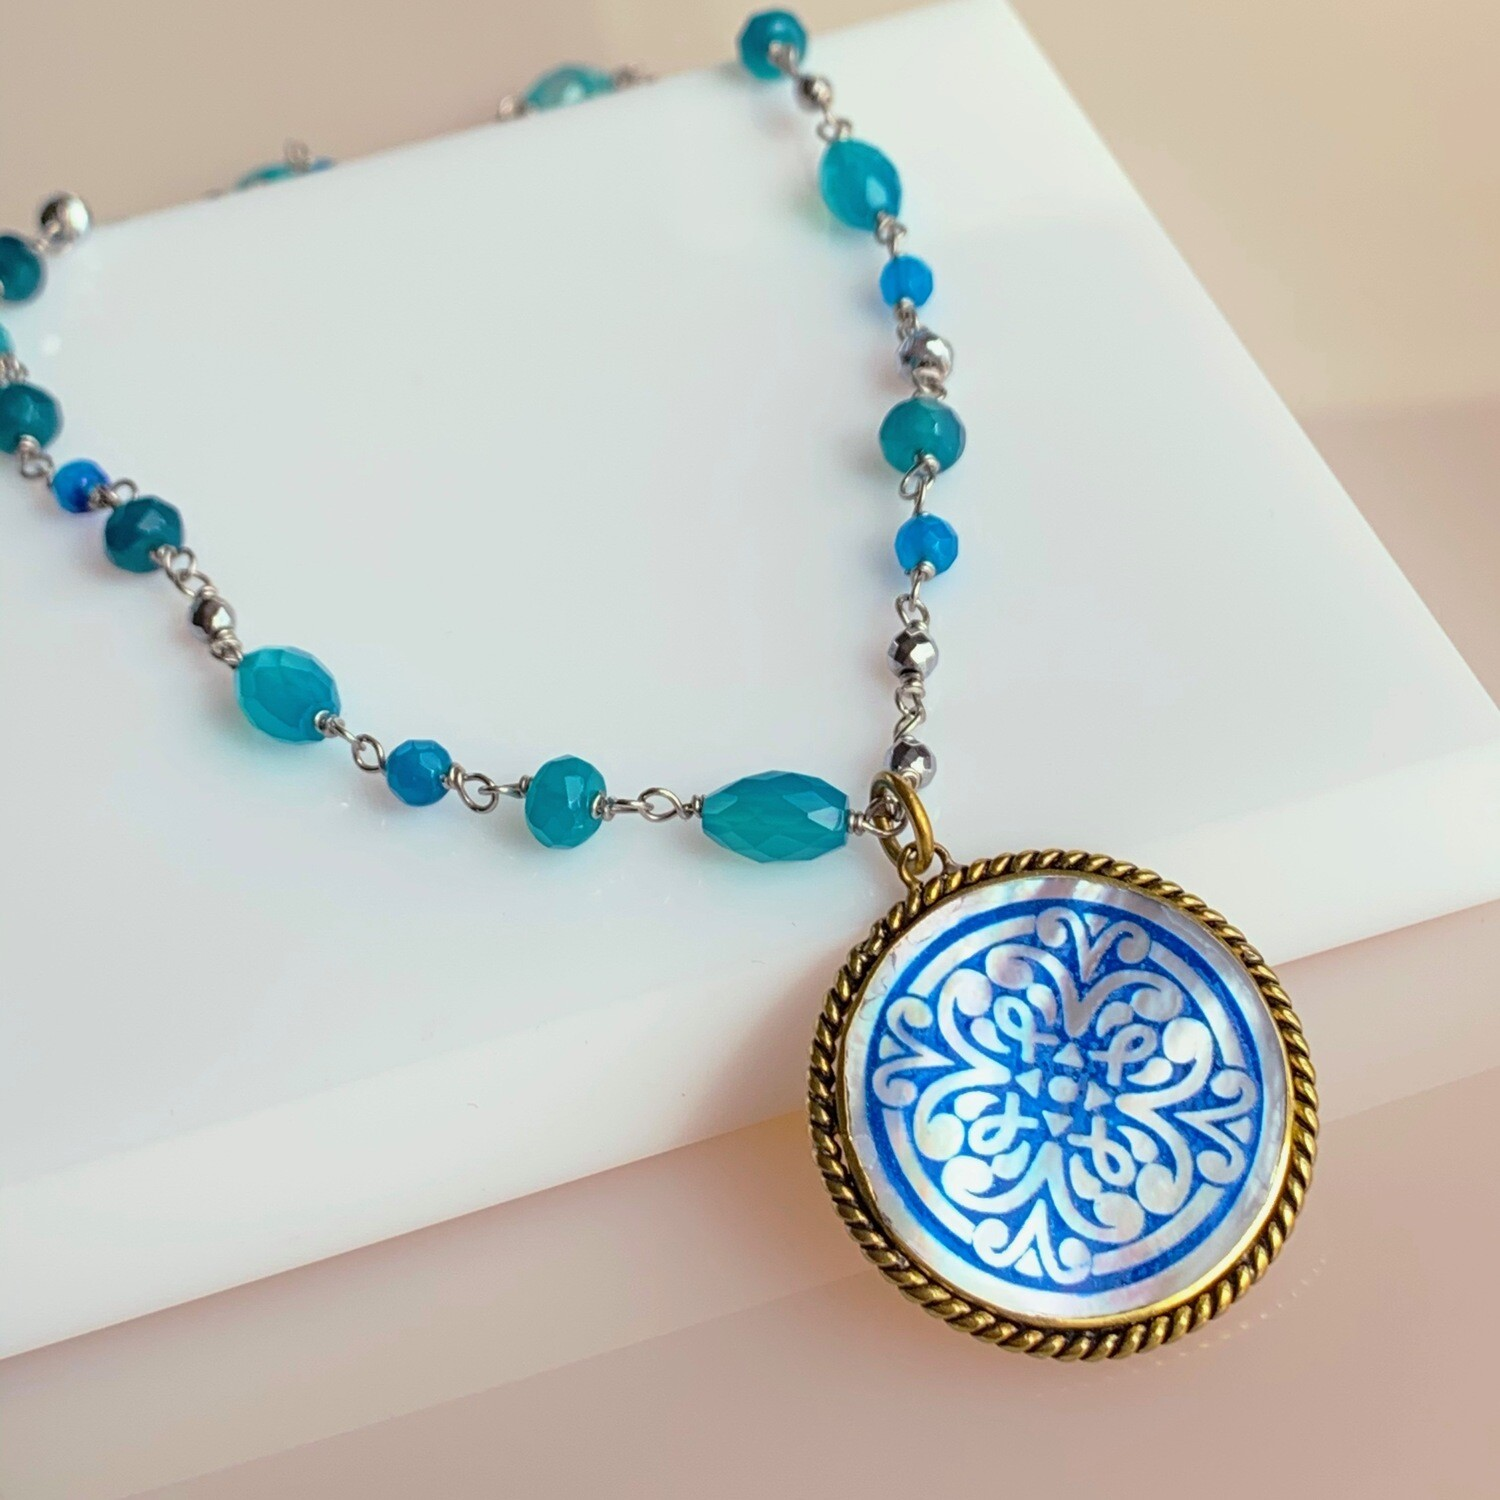 Sundial Beaded Necklace with Pendant